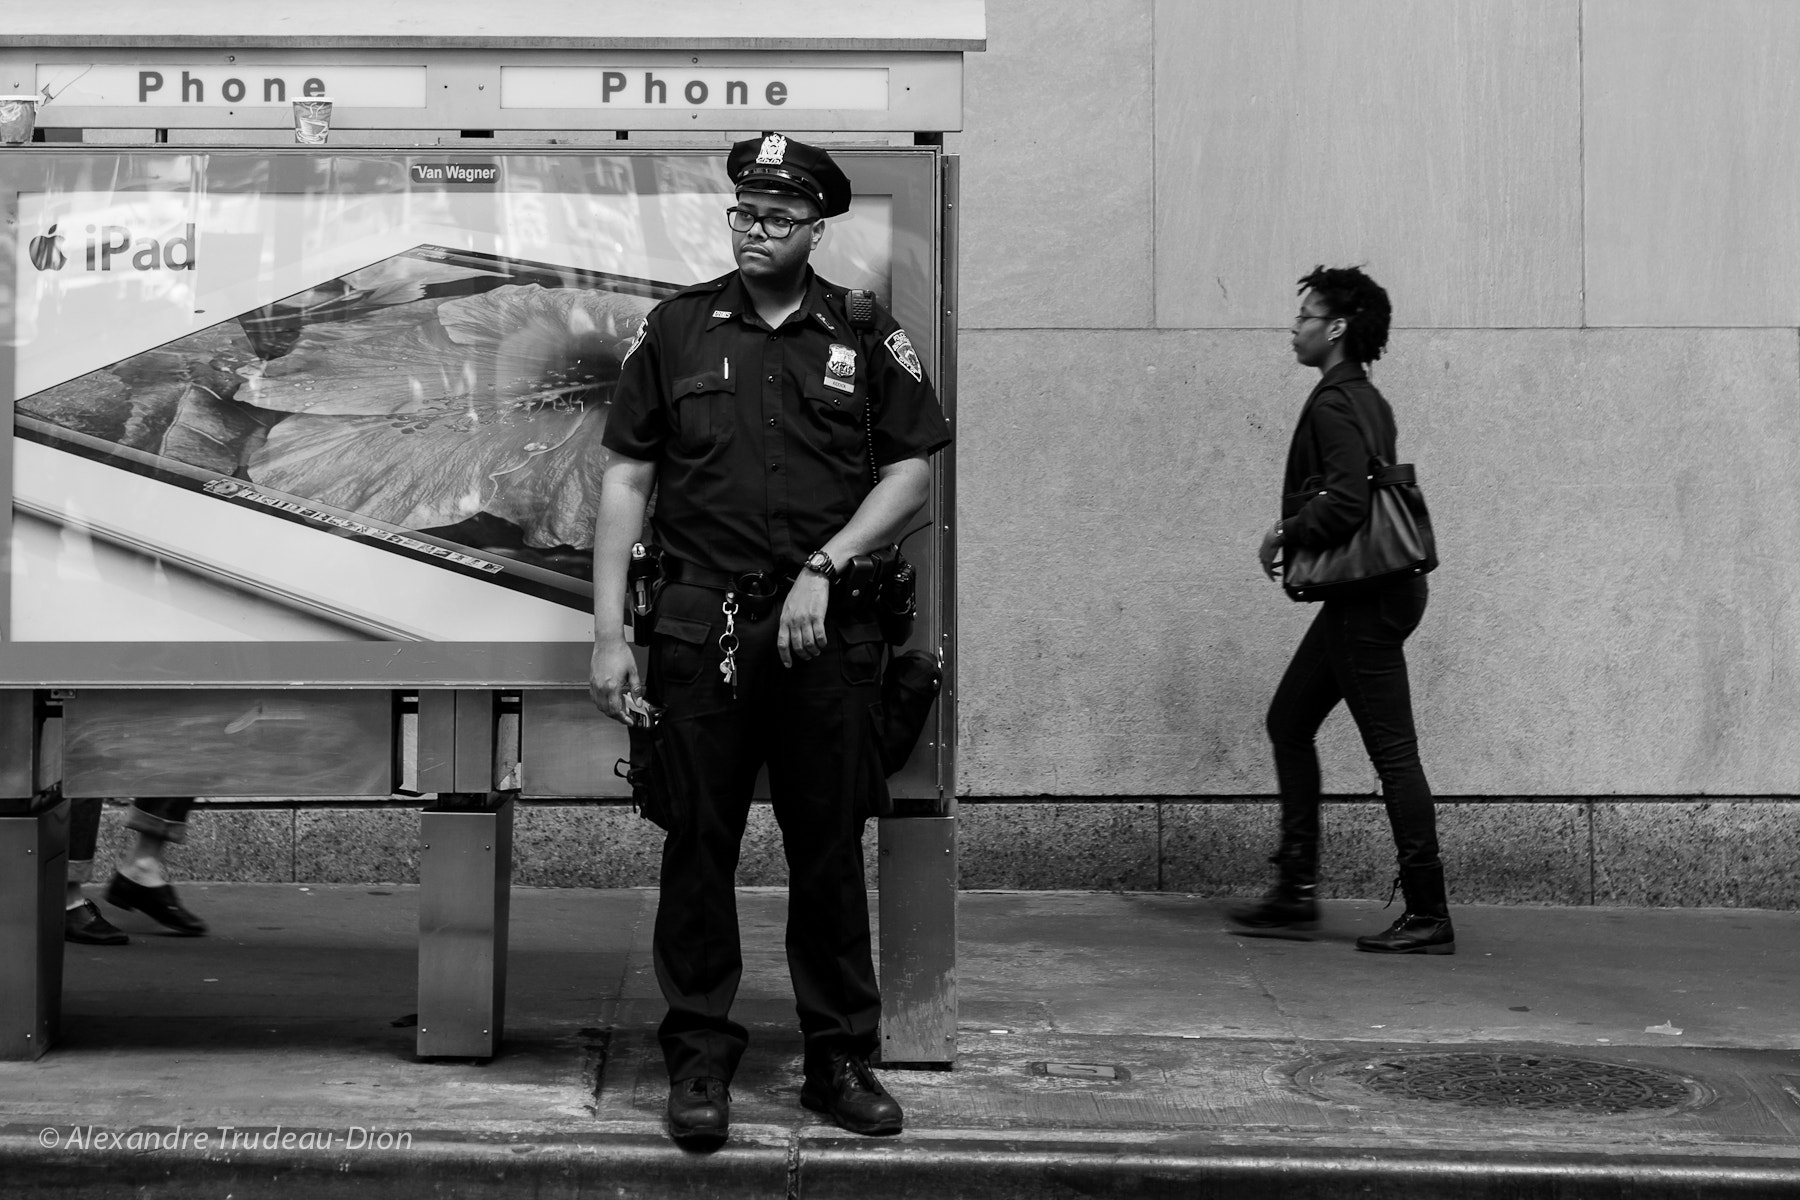 Photograph iPad cop by Alexandre Trudeau-Dion on 500px